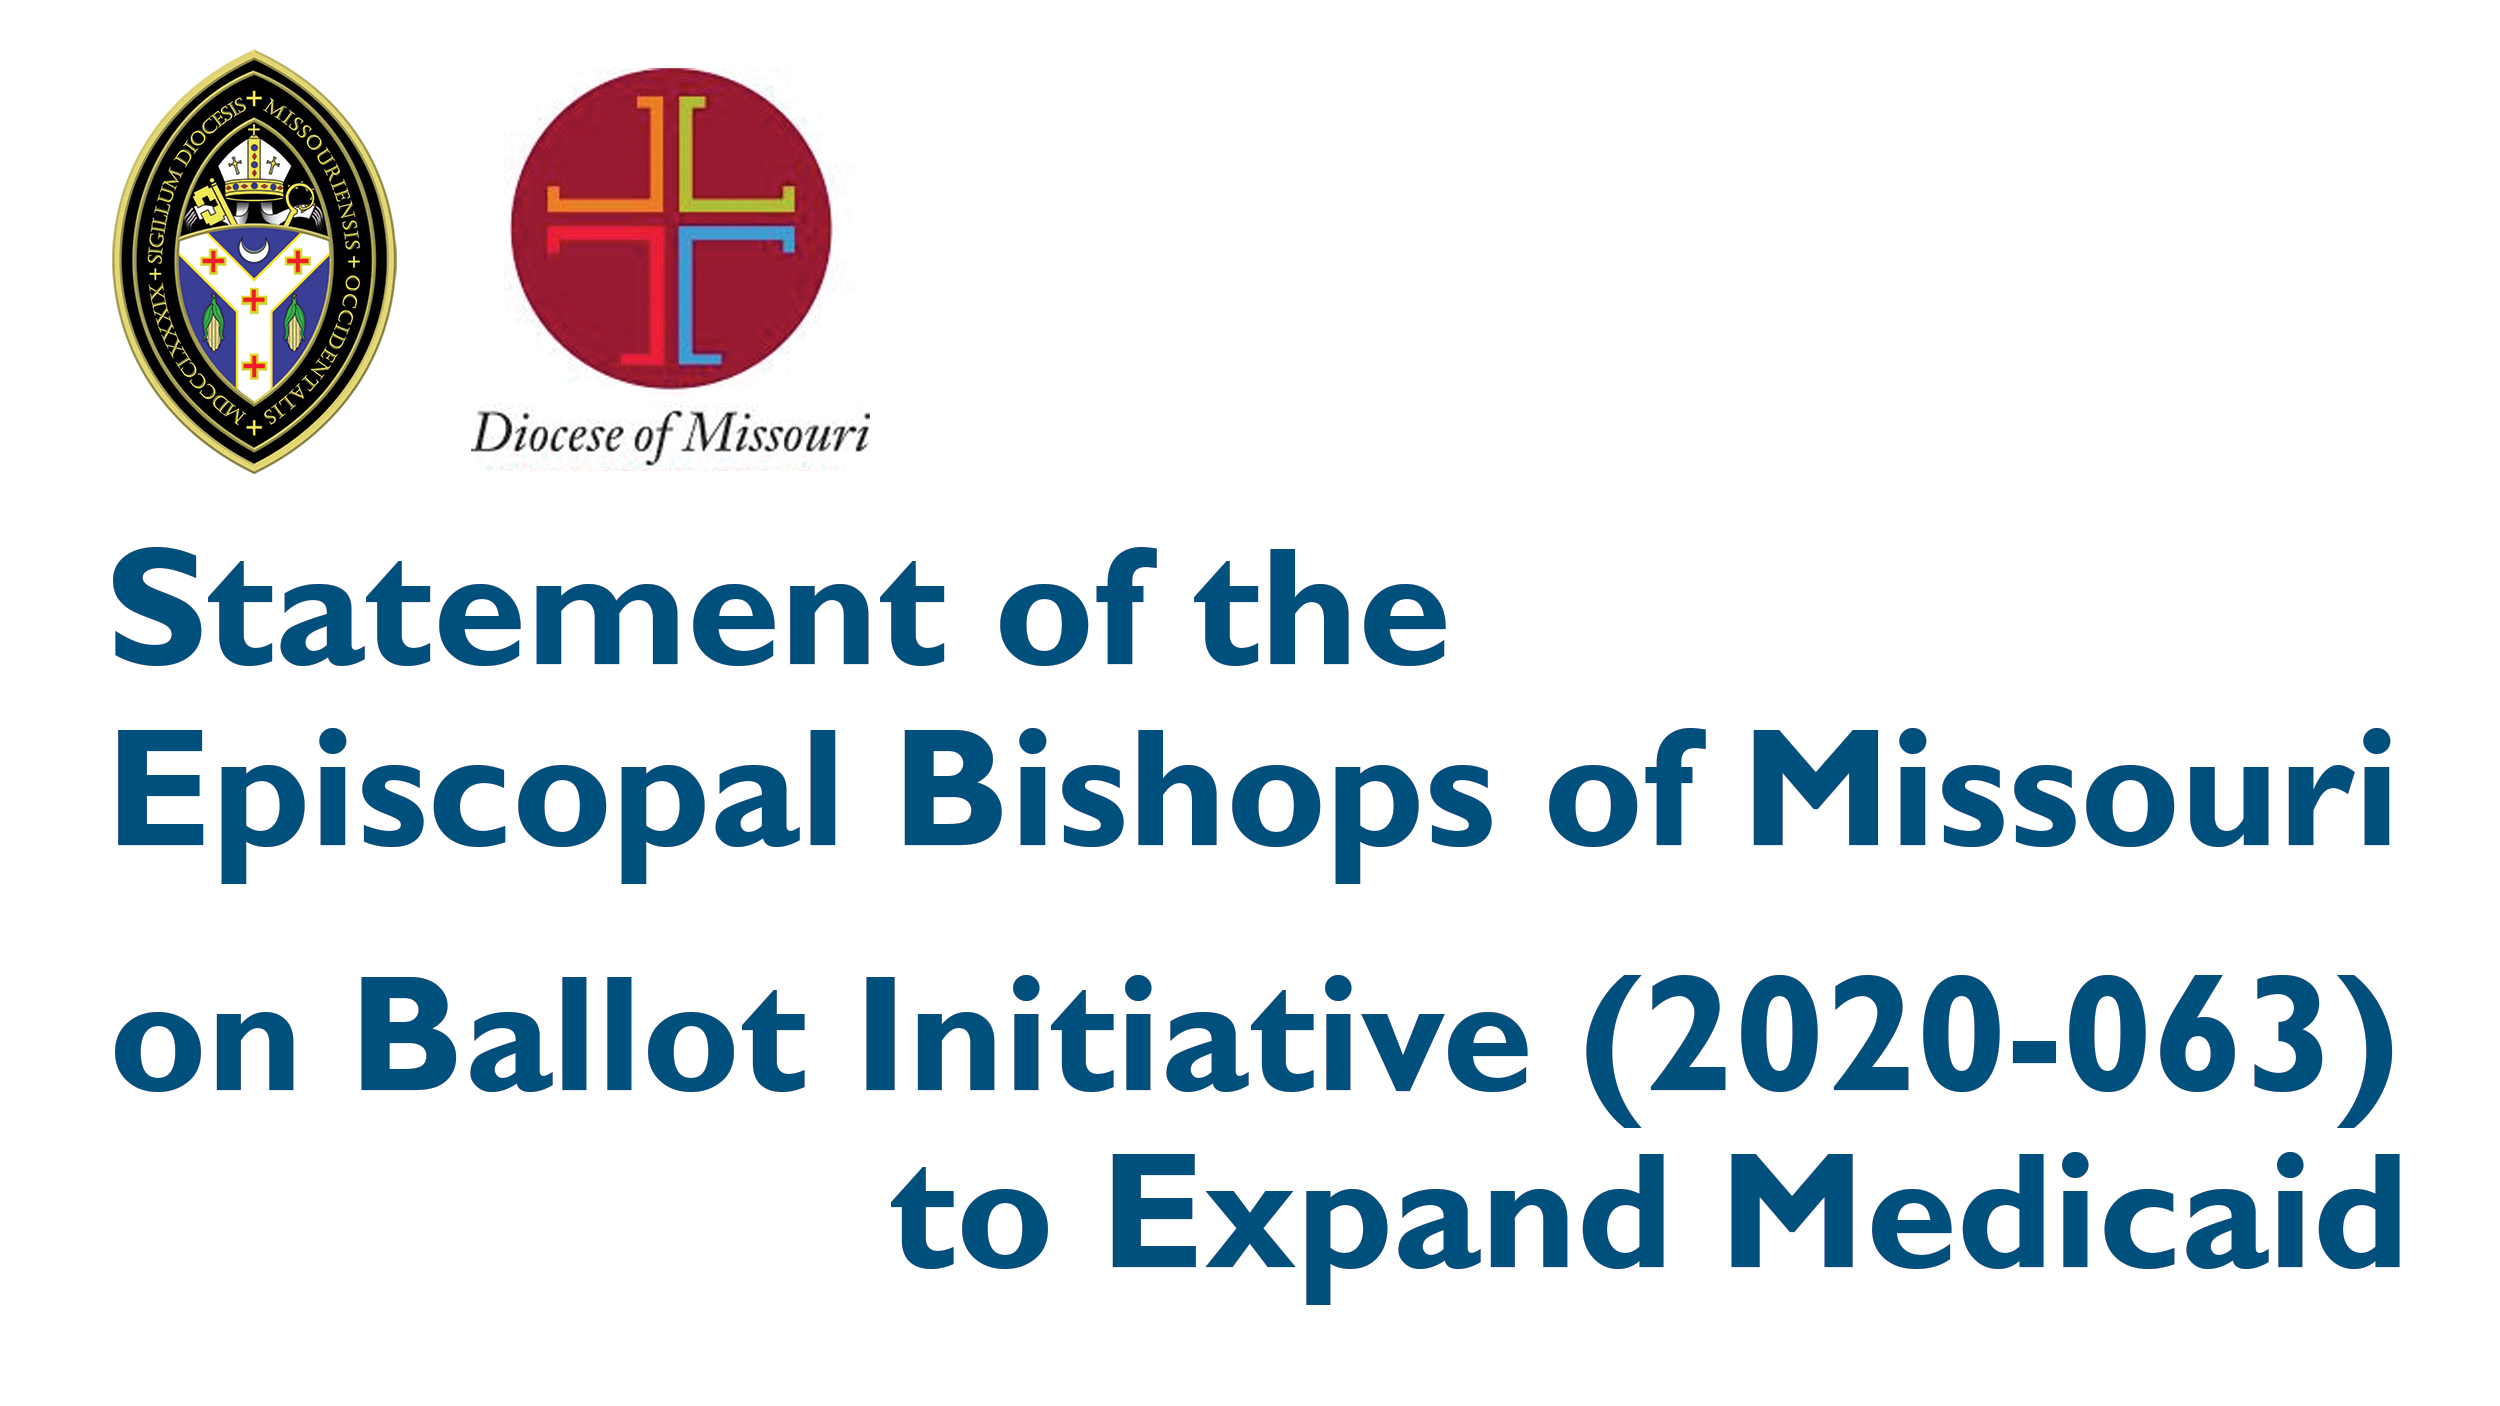 Statement of the Episcopal Bishops of Missouri on Ballot Initiative (2020-063) to Expand Medicaid